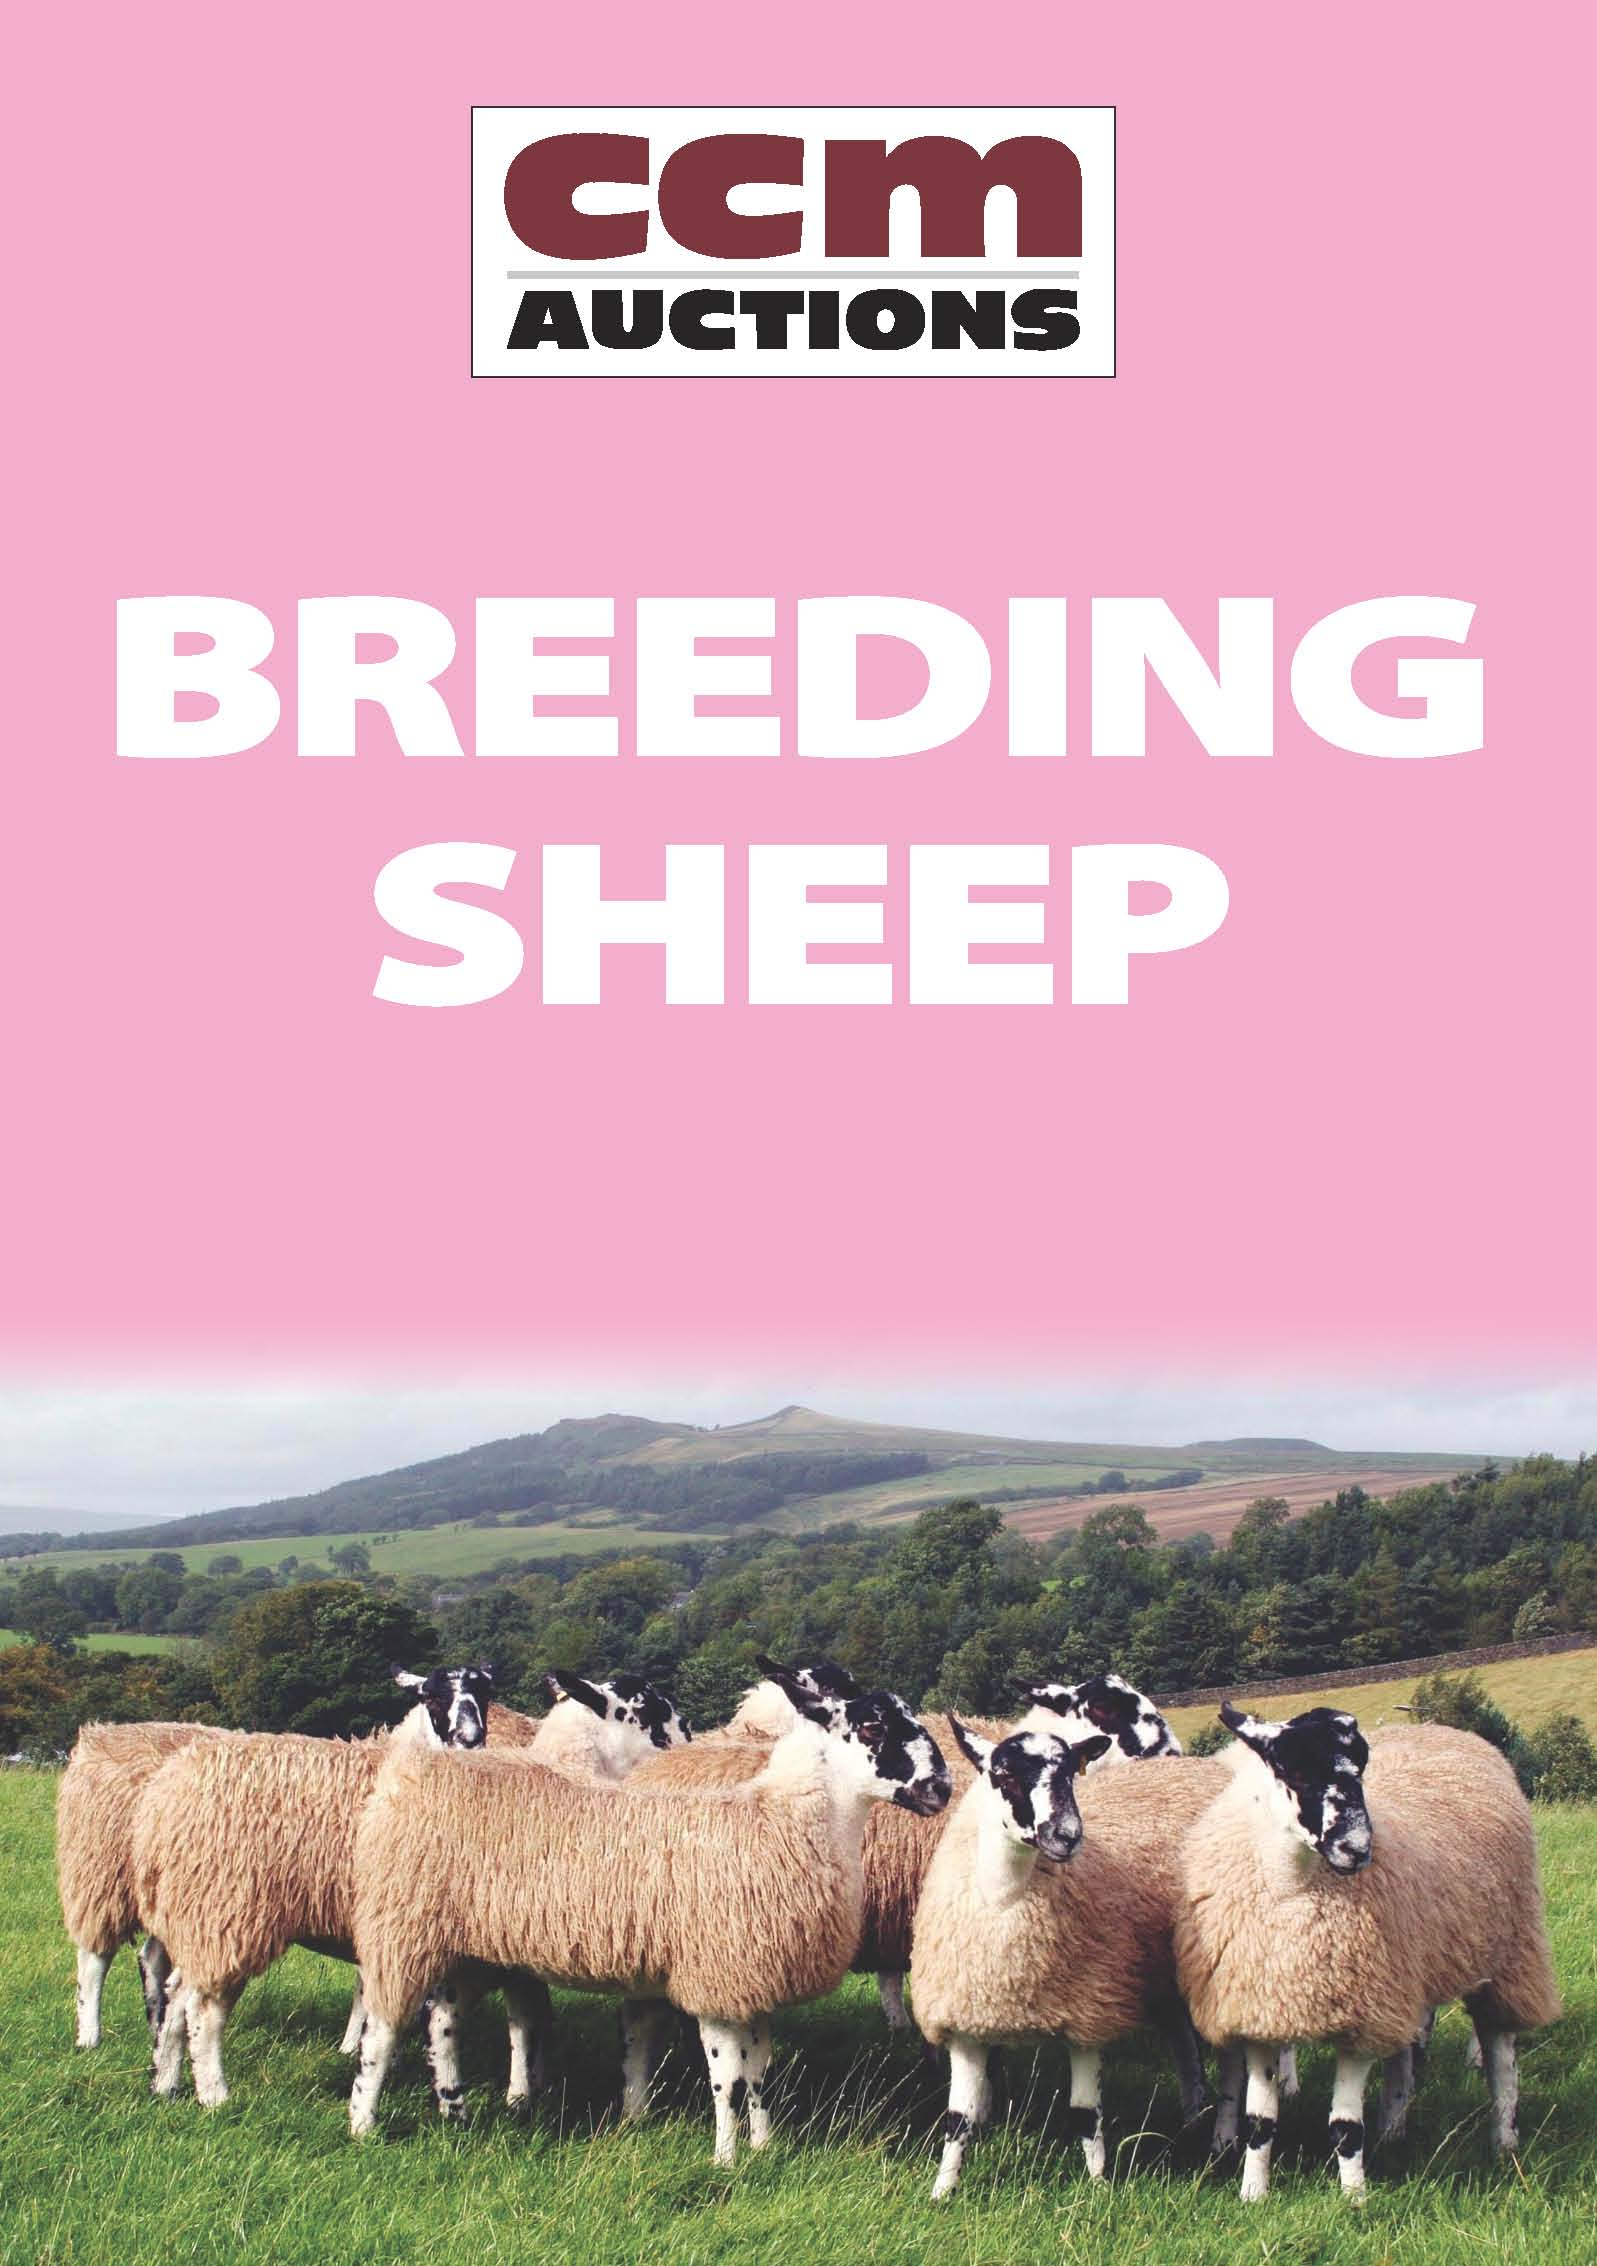 BREEDING SHEEP - MONDAY 22ND MAY 2017